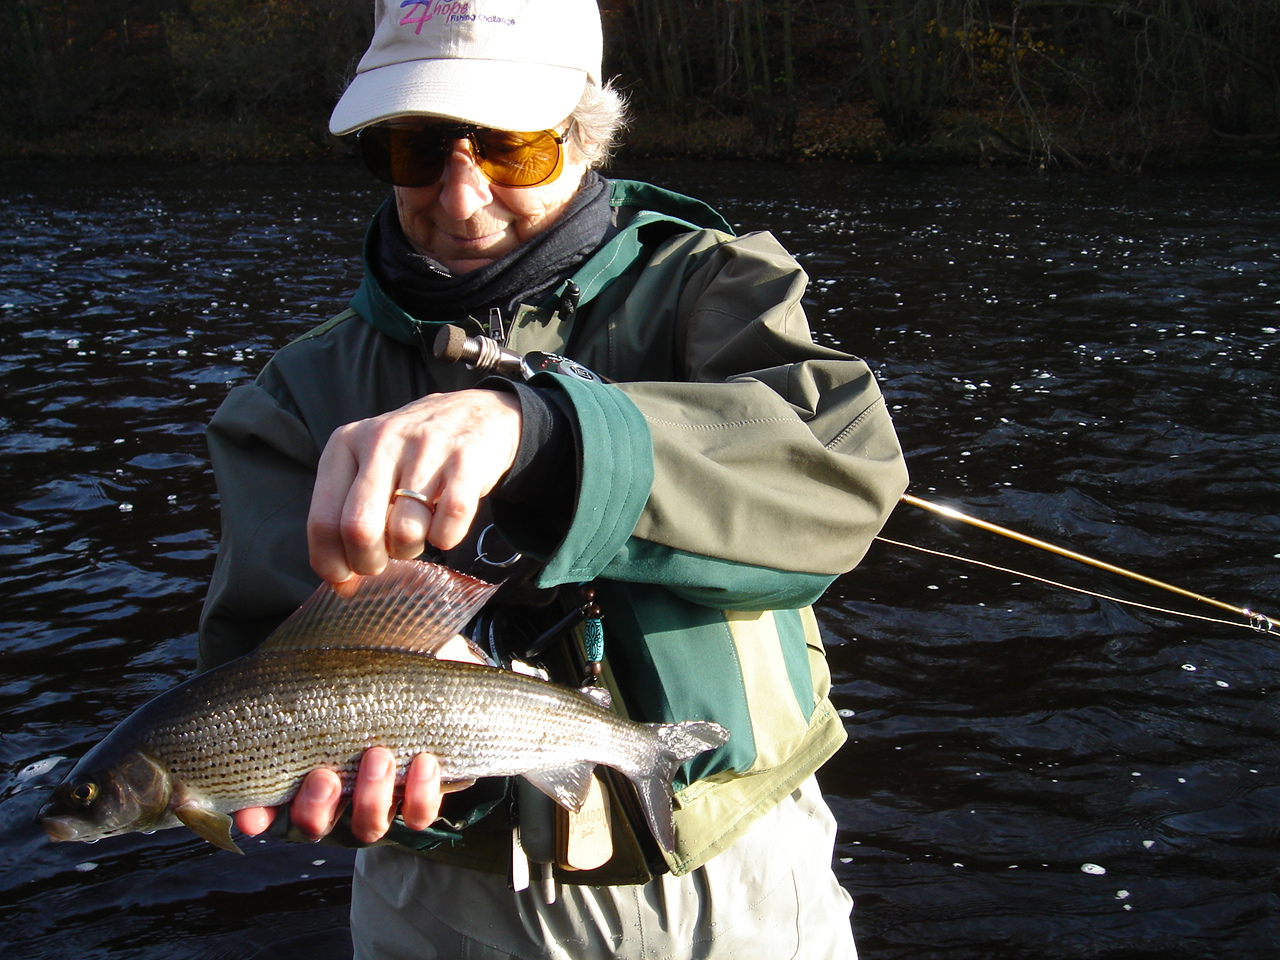 sunny morning, handsome fish--life is good! River Ure at Masham.